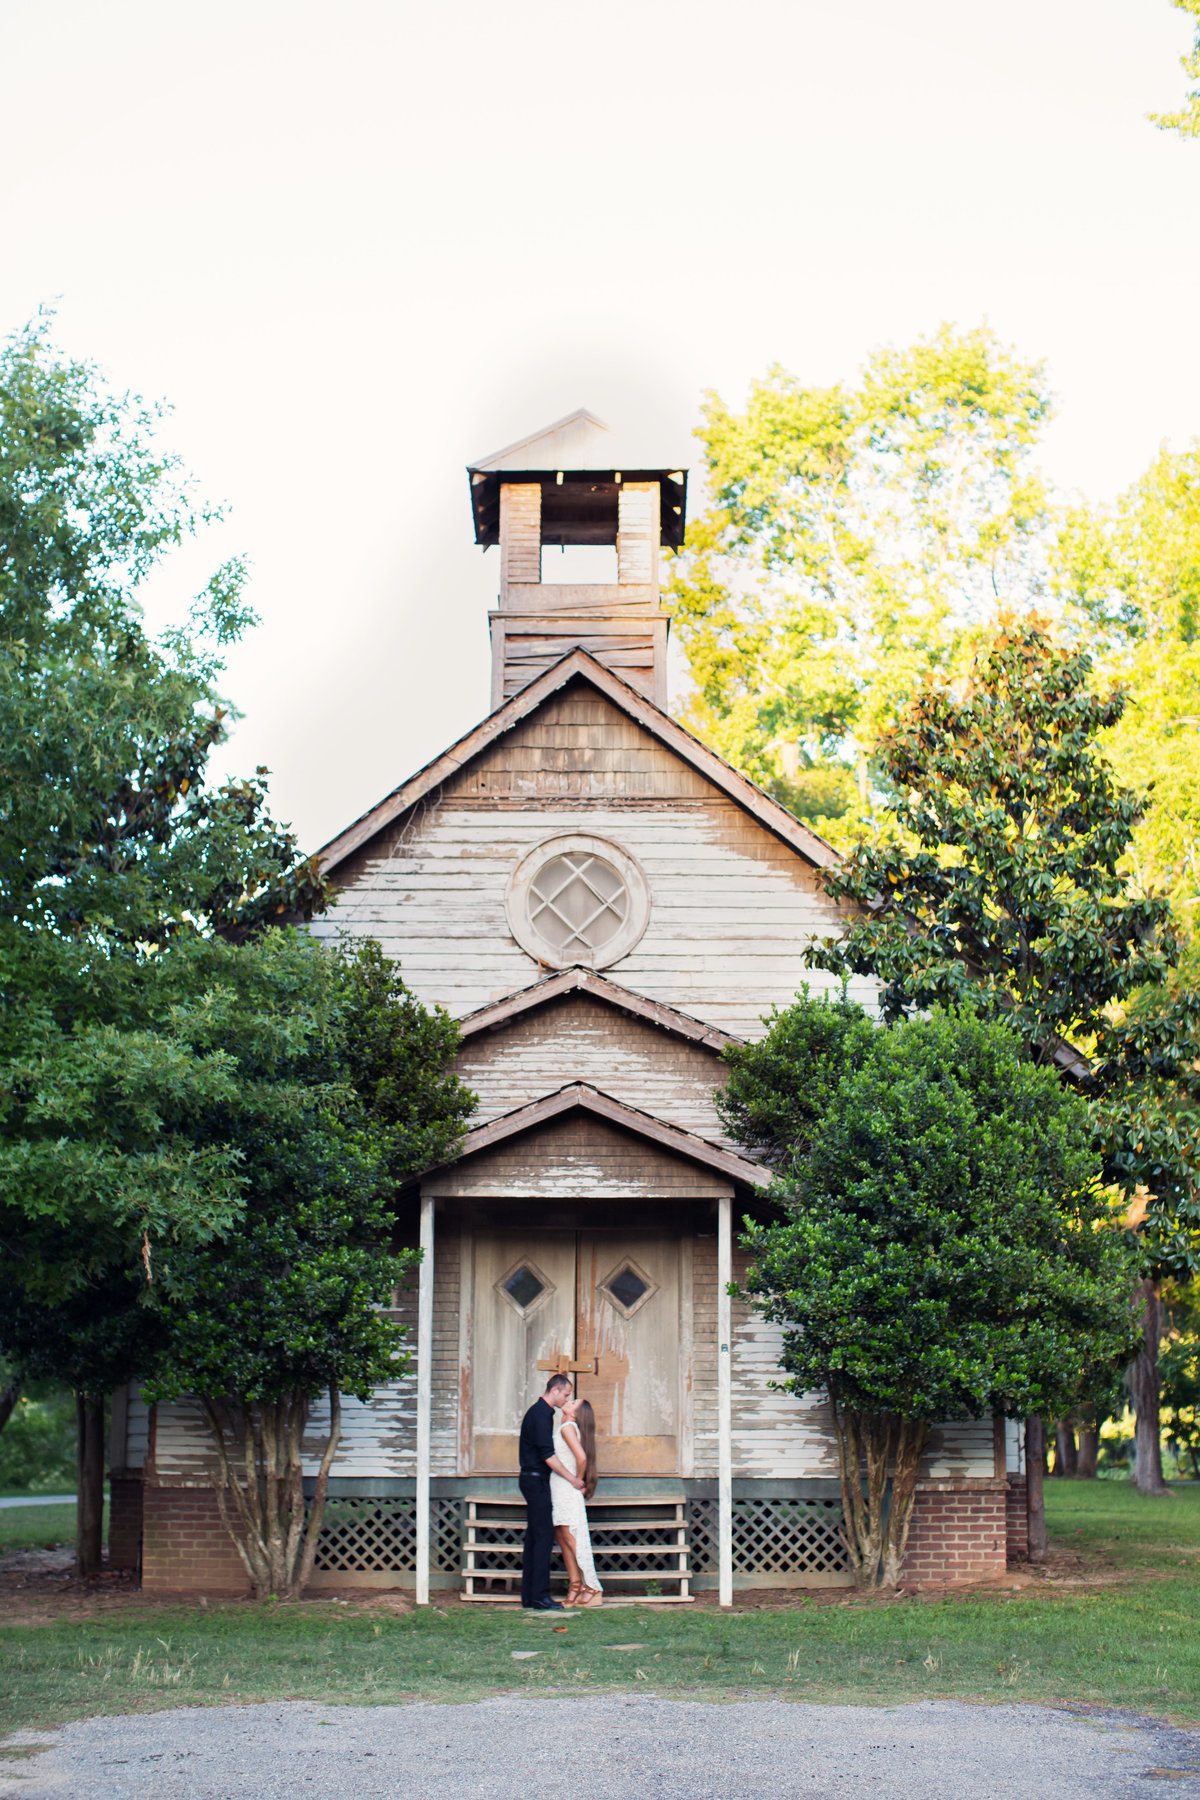 jadore_photographie_parker_kristen_engagement_session_spectre_alabama-183